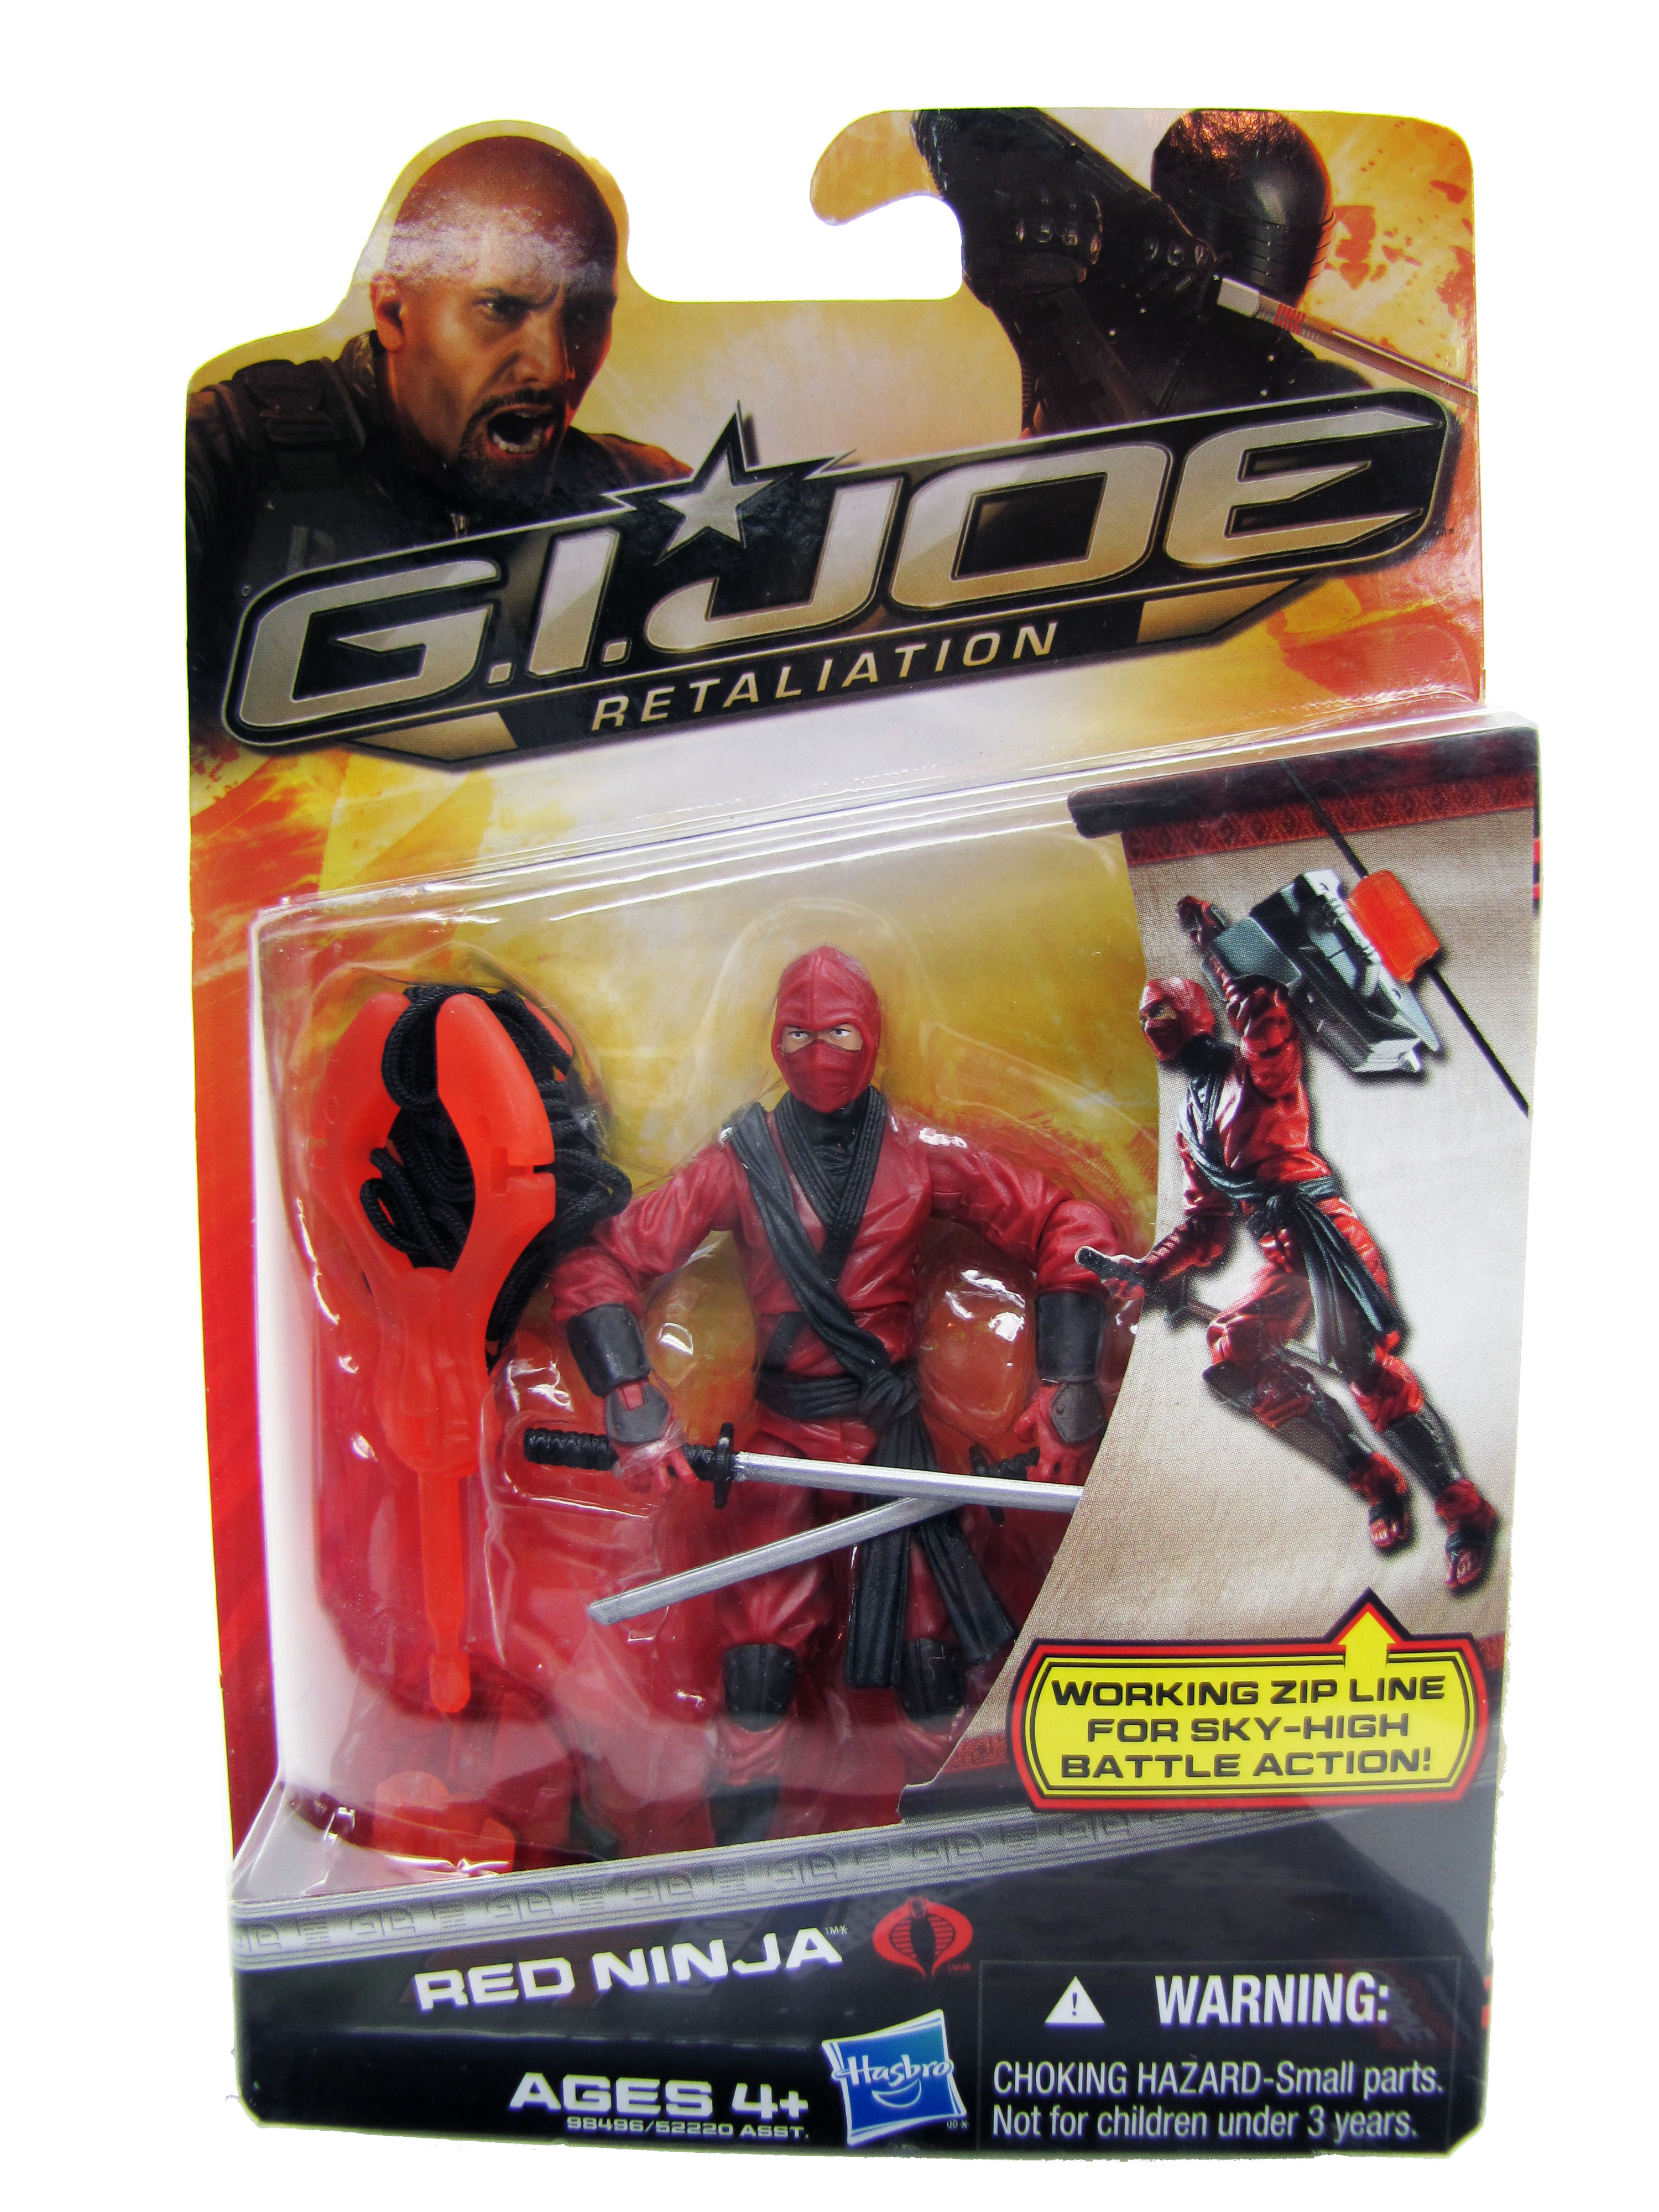 2013 GIJoe Retailation Red Ninja Mint on Card